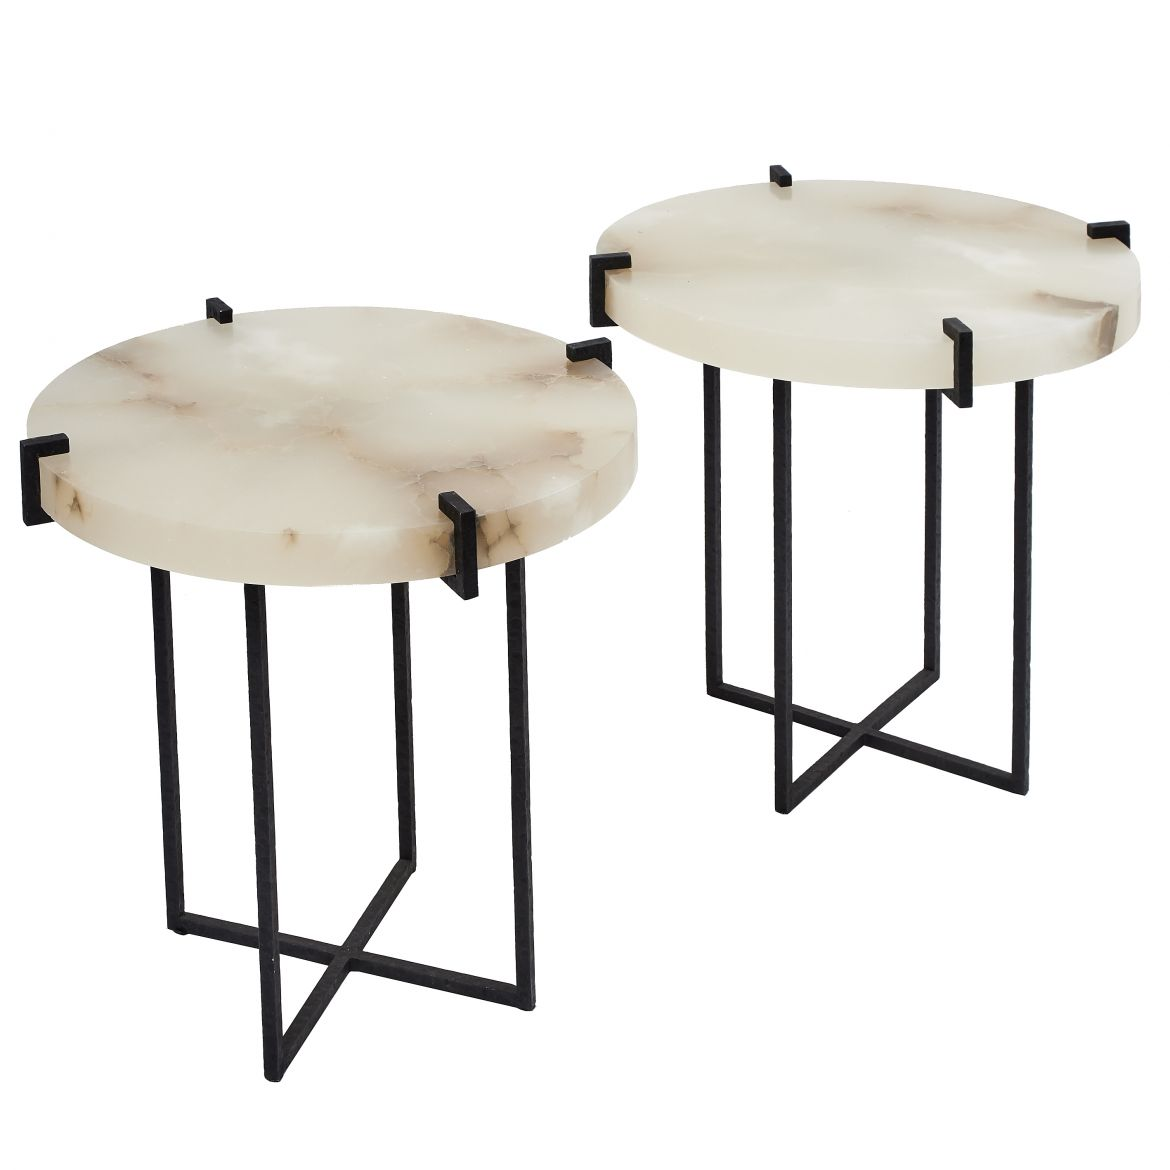 Alabaster 'Julien' Tables